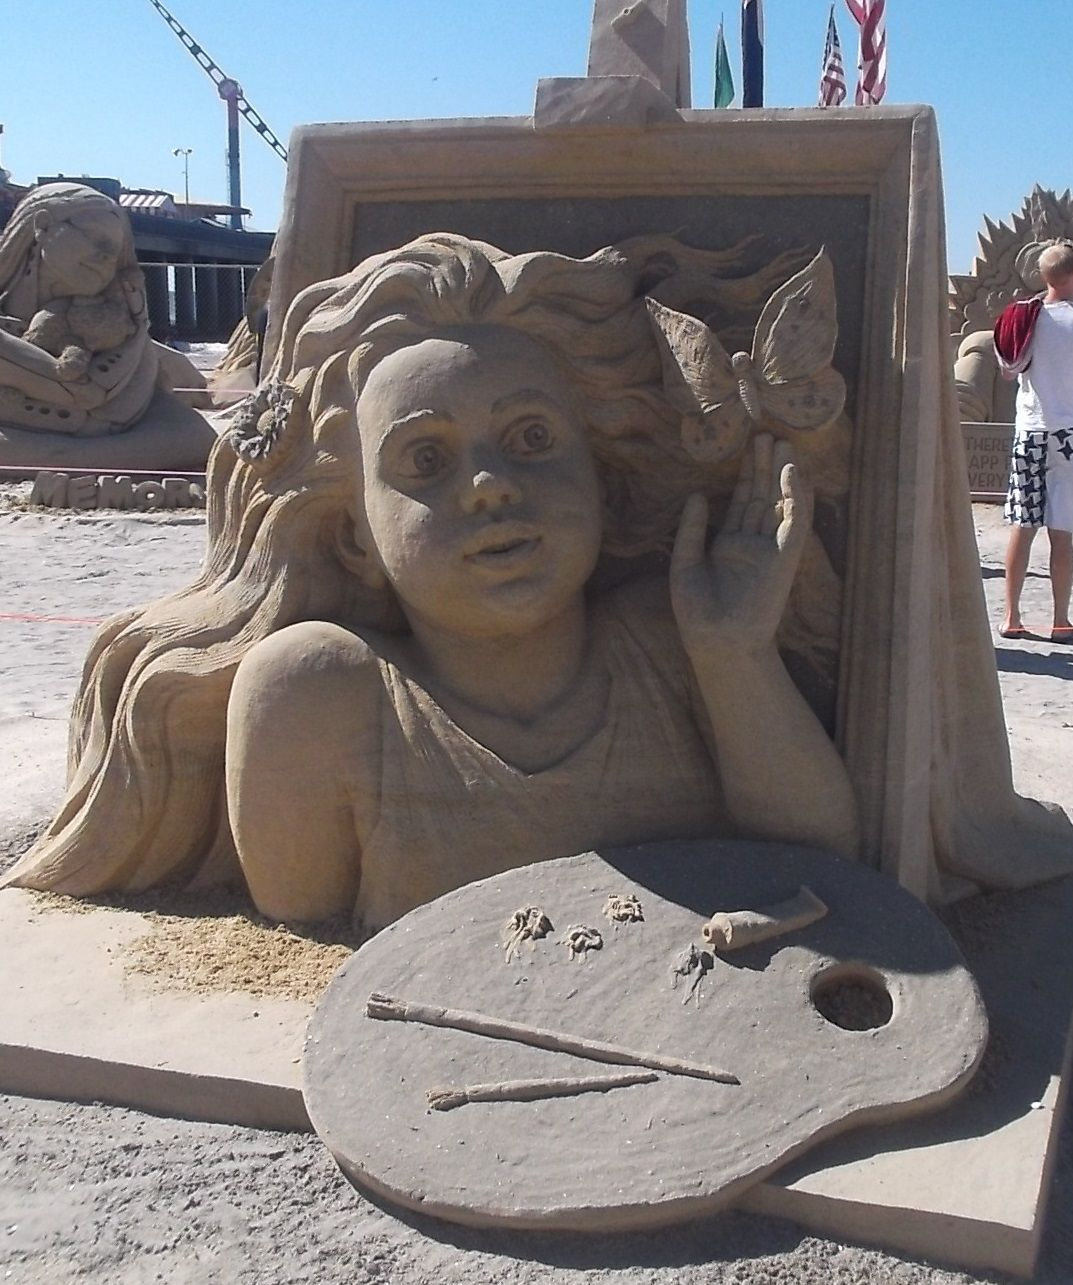 Atlantic City Sand Sculpting World Cup 2014 ~ 2nd place, singles